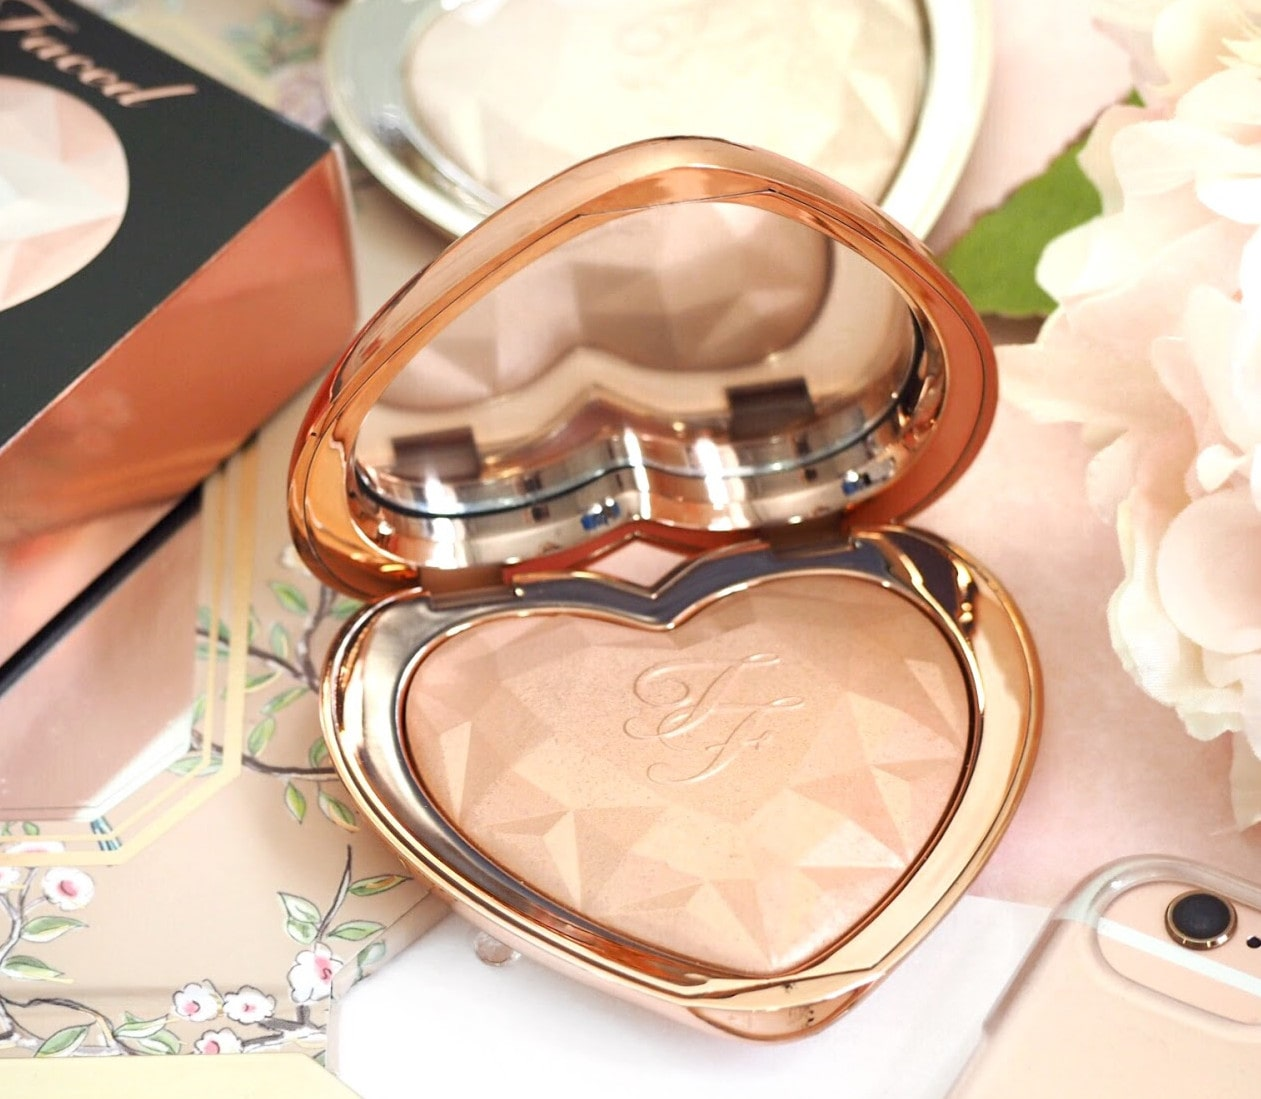 Too Faced Ray of Light Highlighter for all skin tones